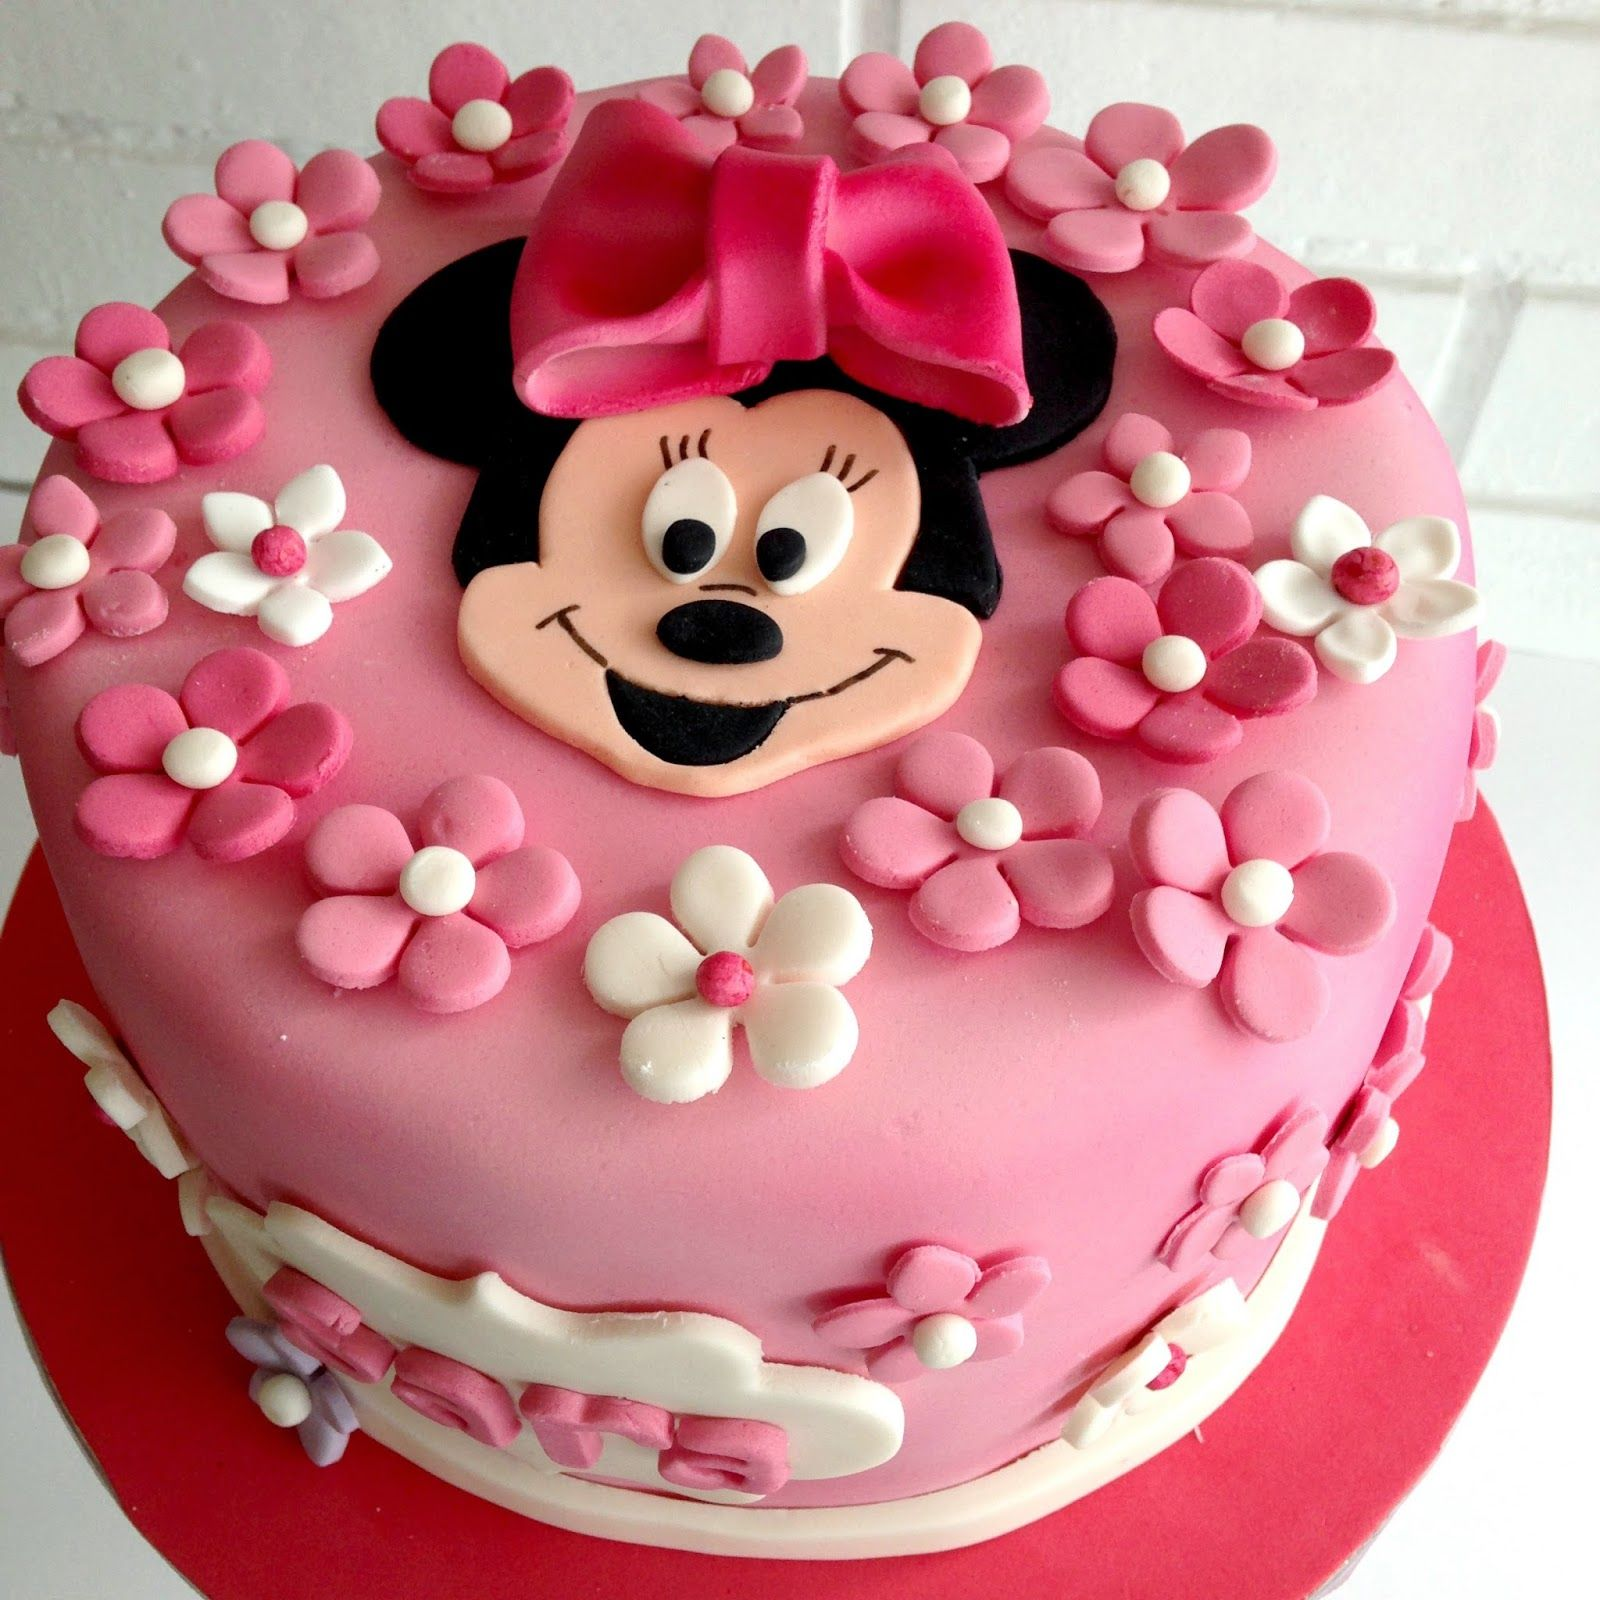 pasteles de fondant de minnie mouse buscar con google. Black Bedroom Furniture Sets. Home Design Ideas